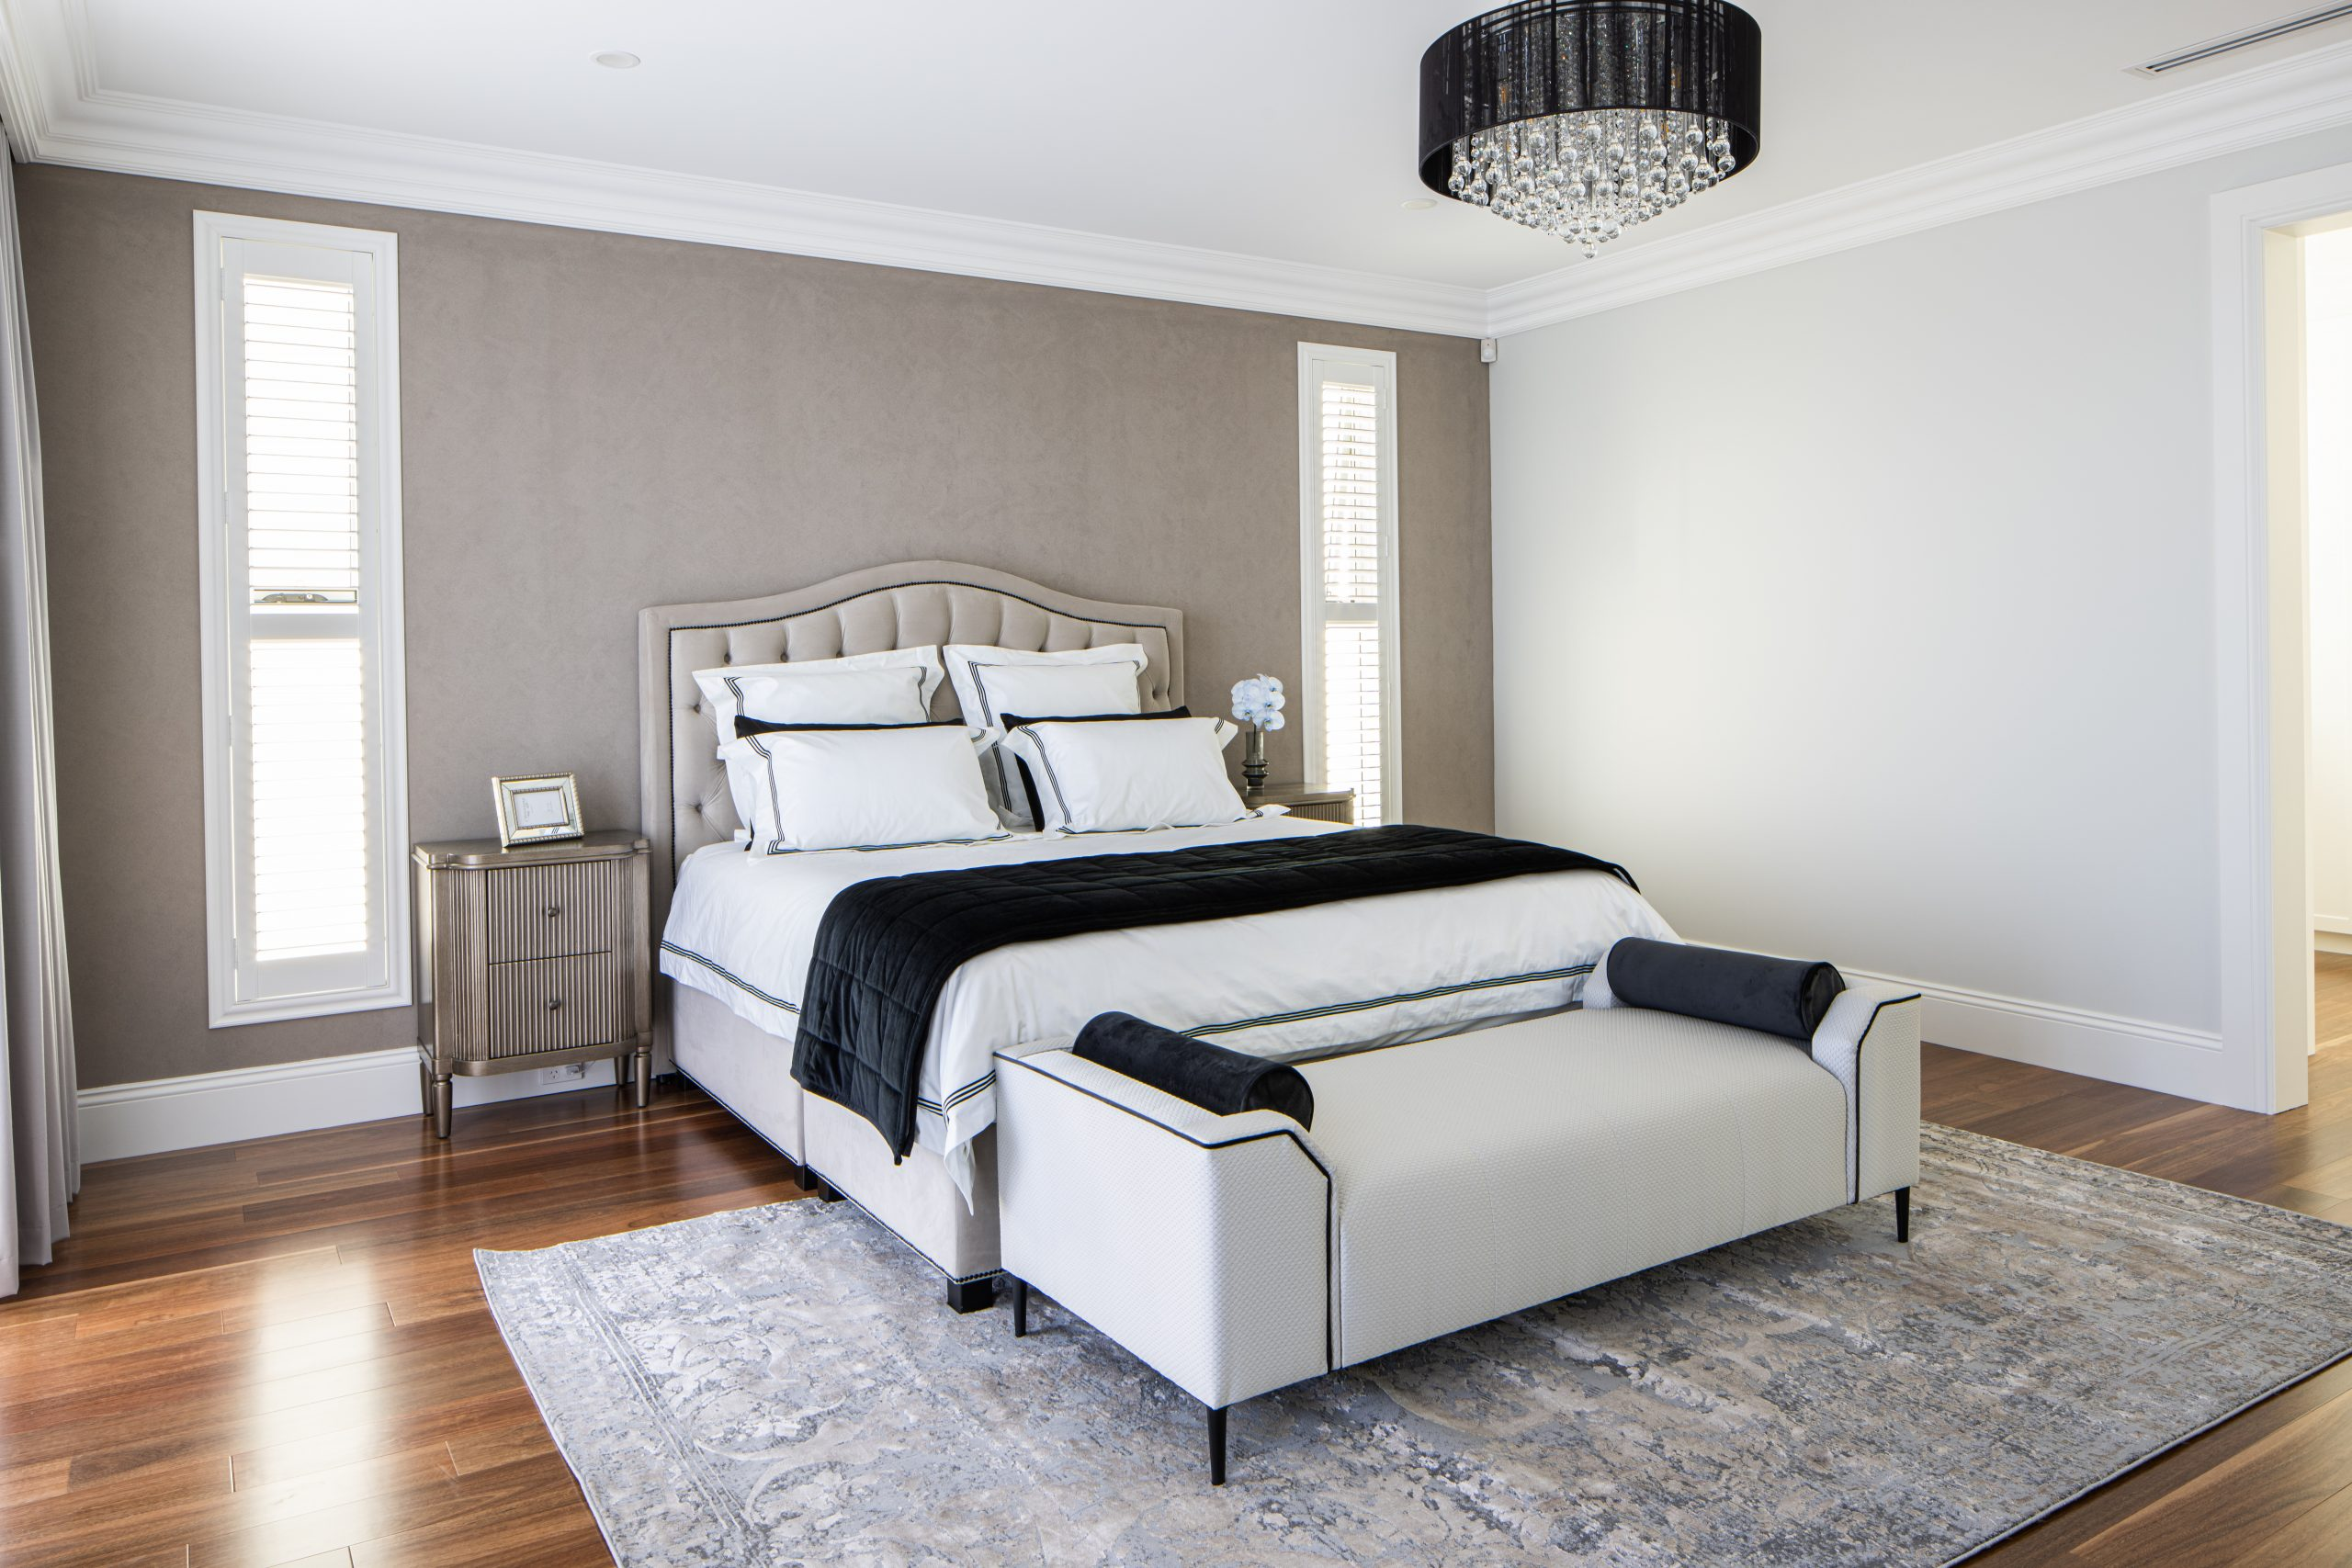 Bedroom in Style